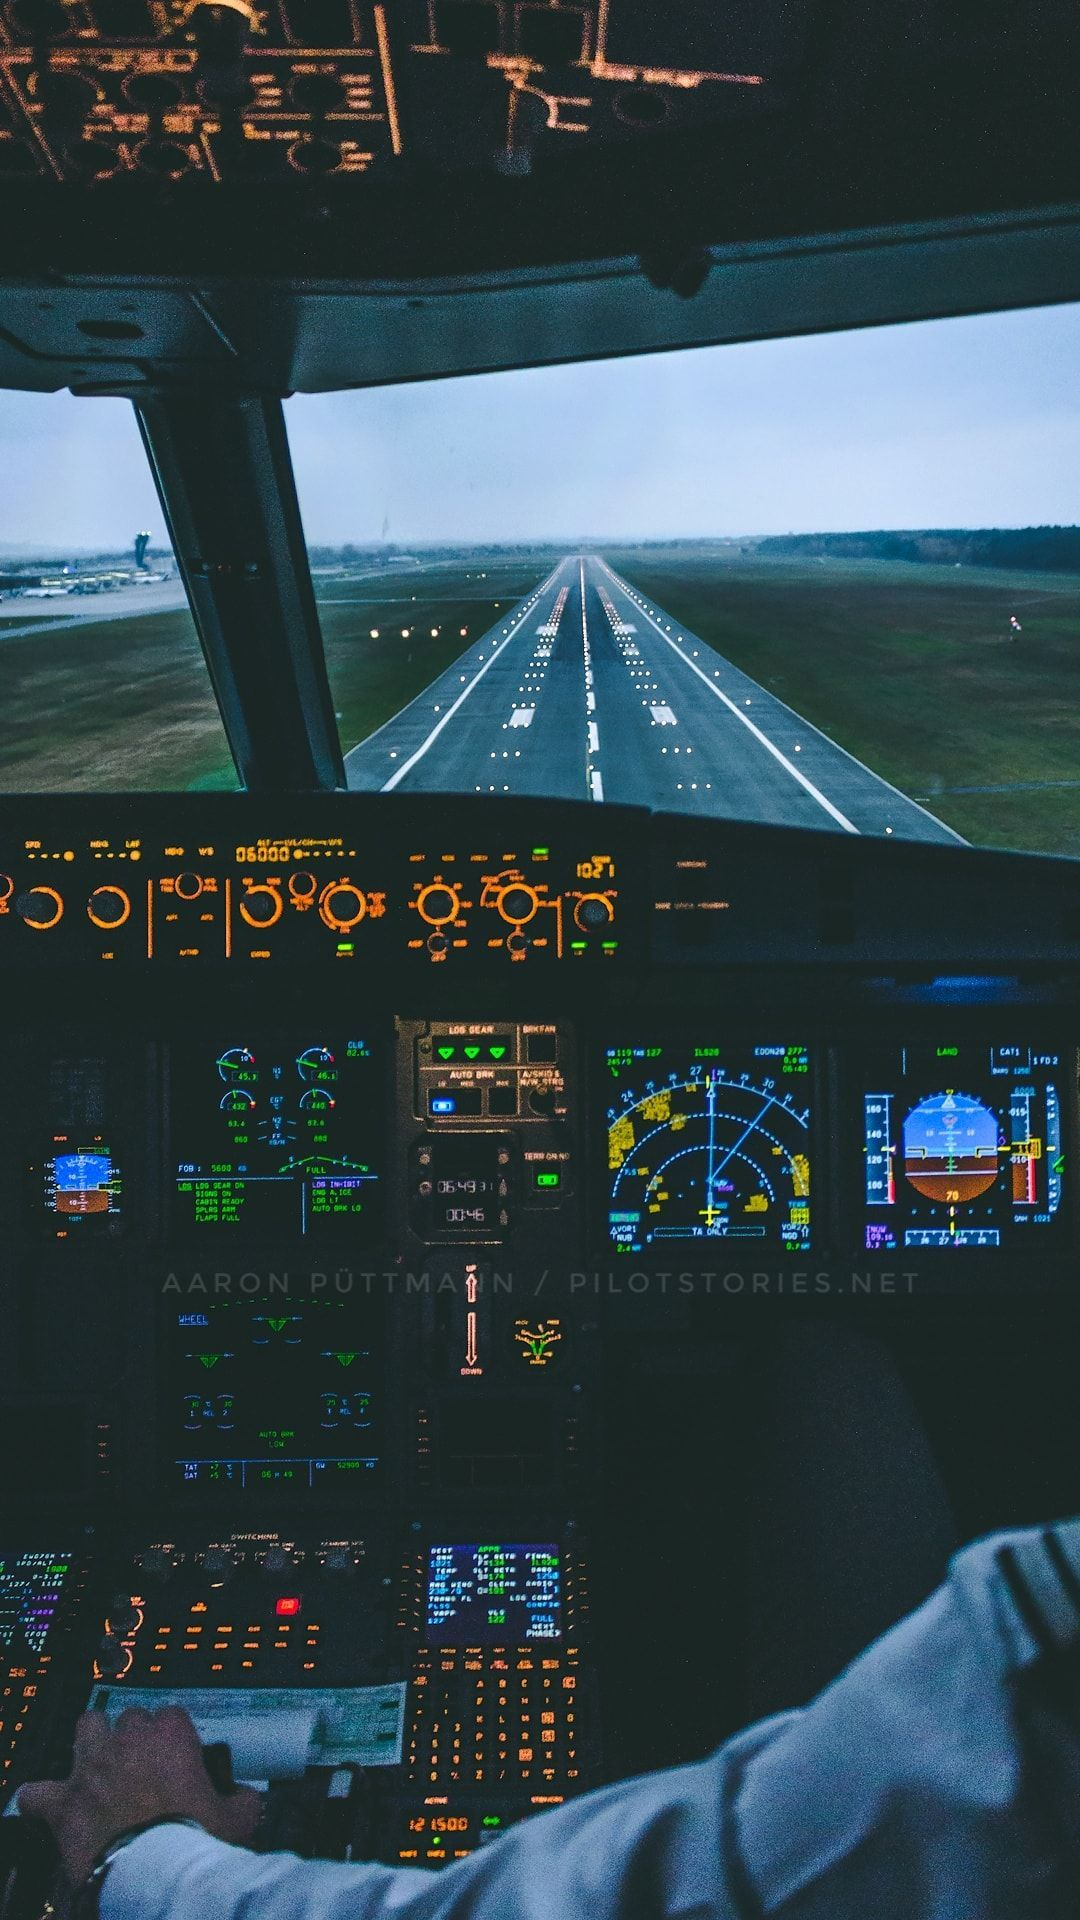 Airplane Wallpaper 4k For Mobile Airplane Wallpaper Aviation Wallpaper Iphone Wallpaper Airplane